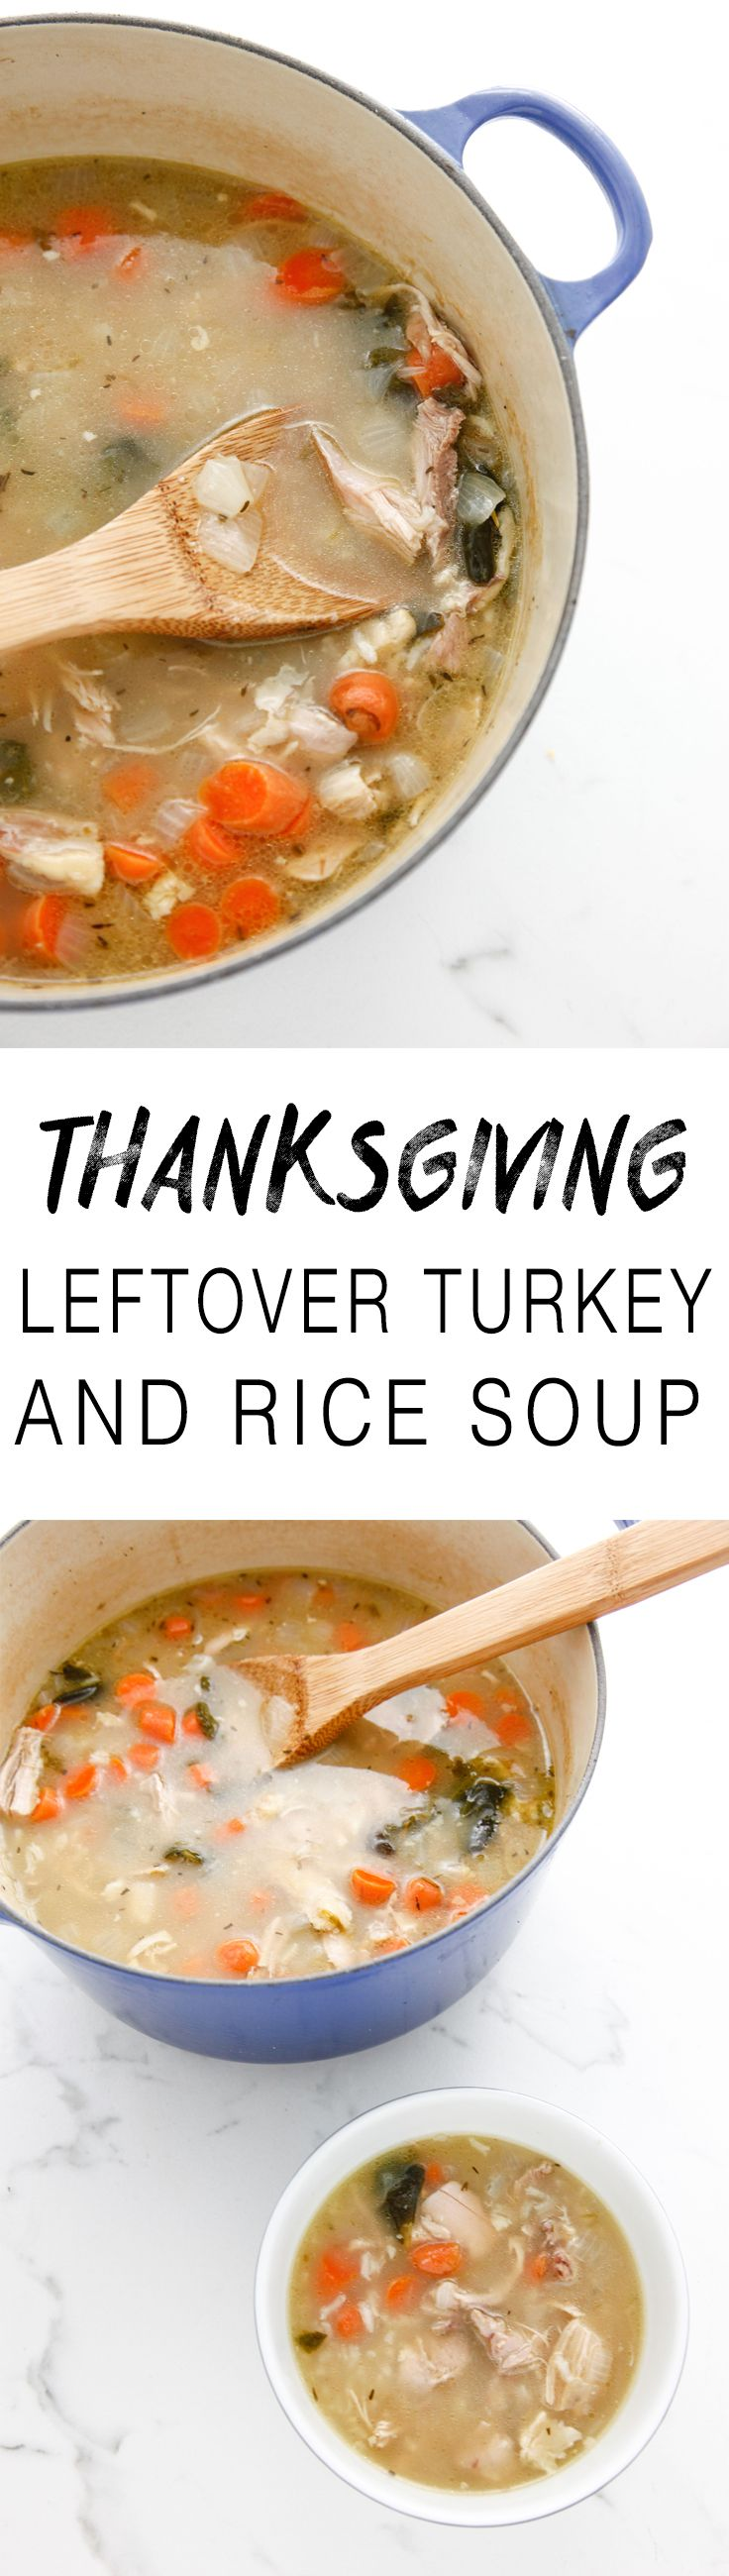 Use up those Thanksgiving leftovers with this Leftover Turkey and Rice Soup recipe! Make an easy dinner after a big meal via @thebrooklyncook